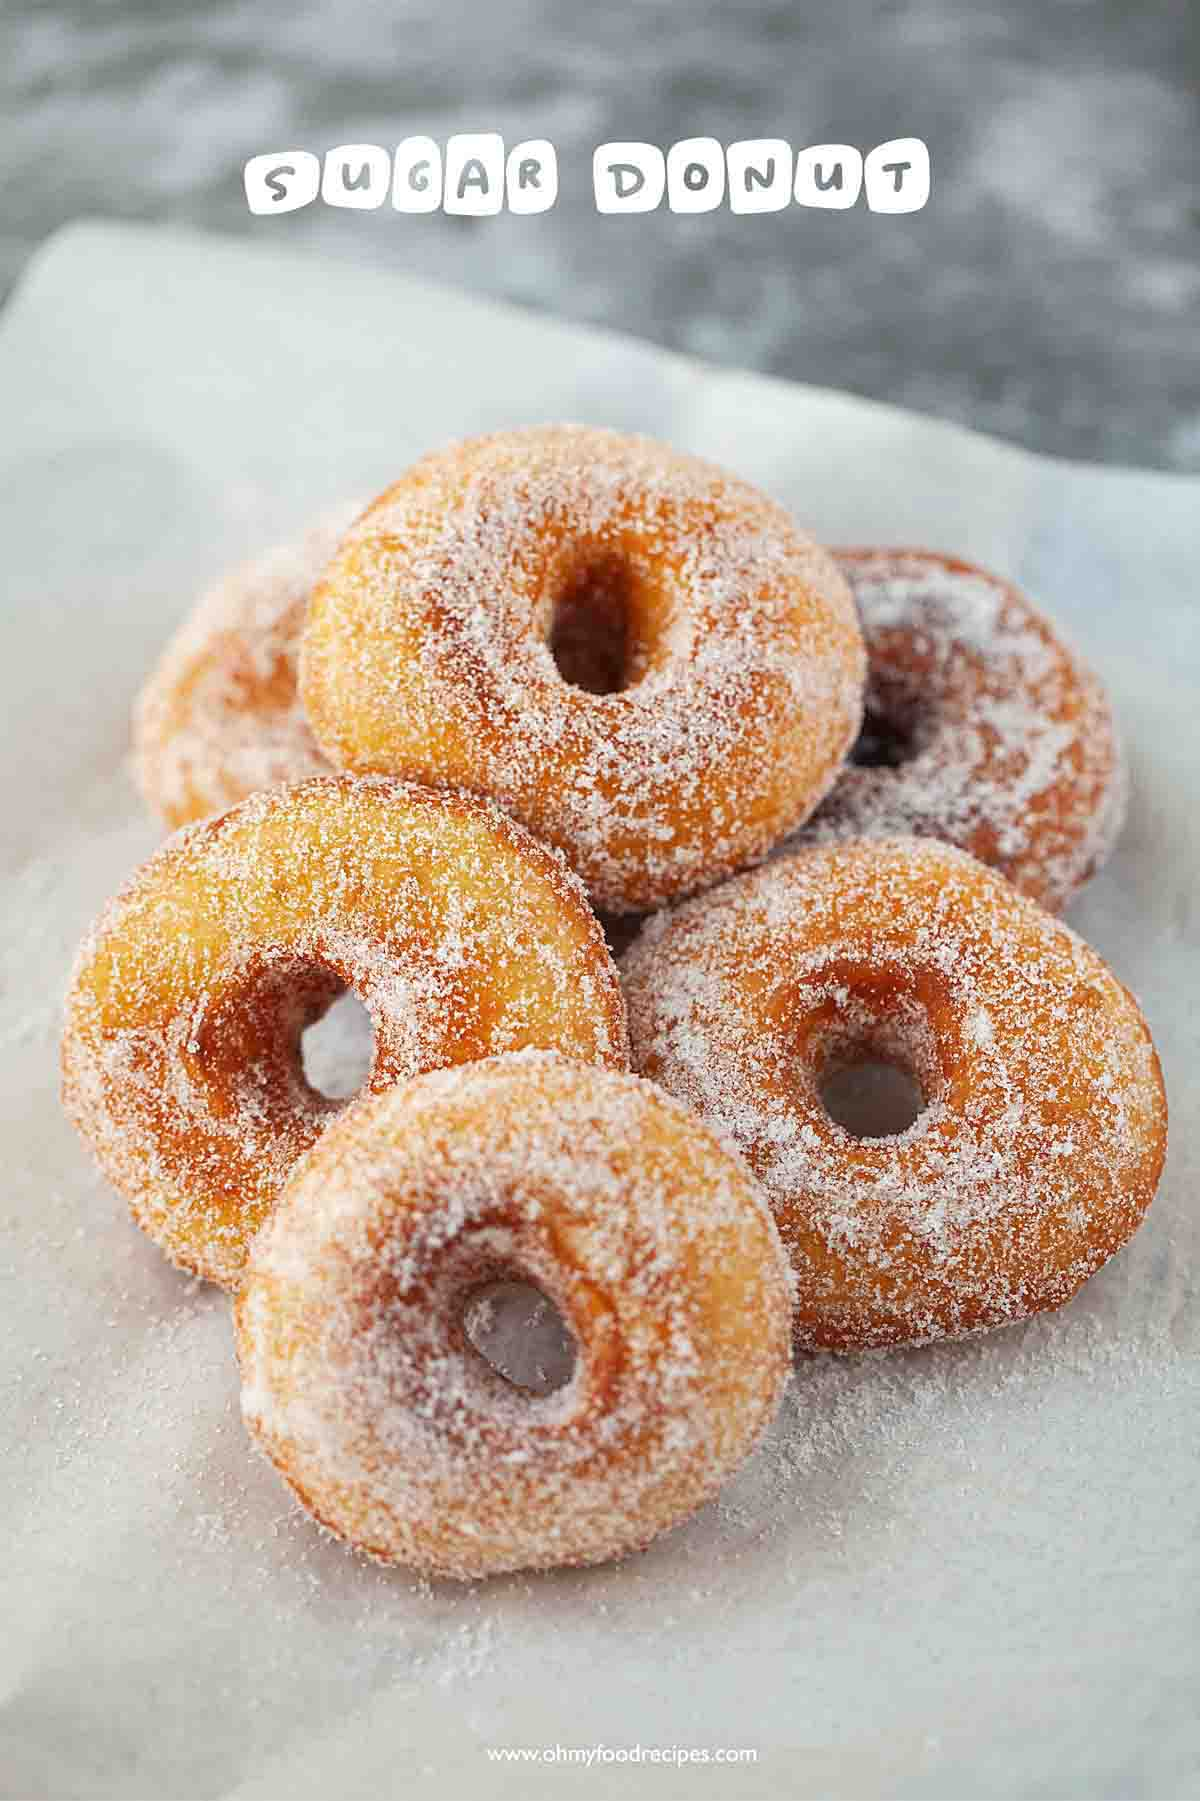 homemade sugar donuts with holes in the middle